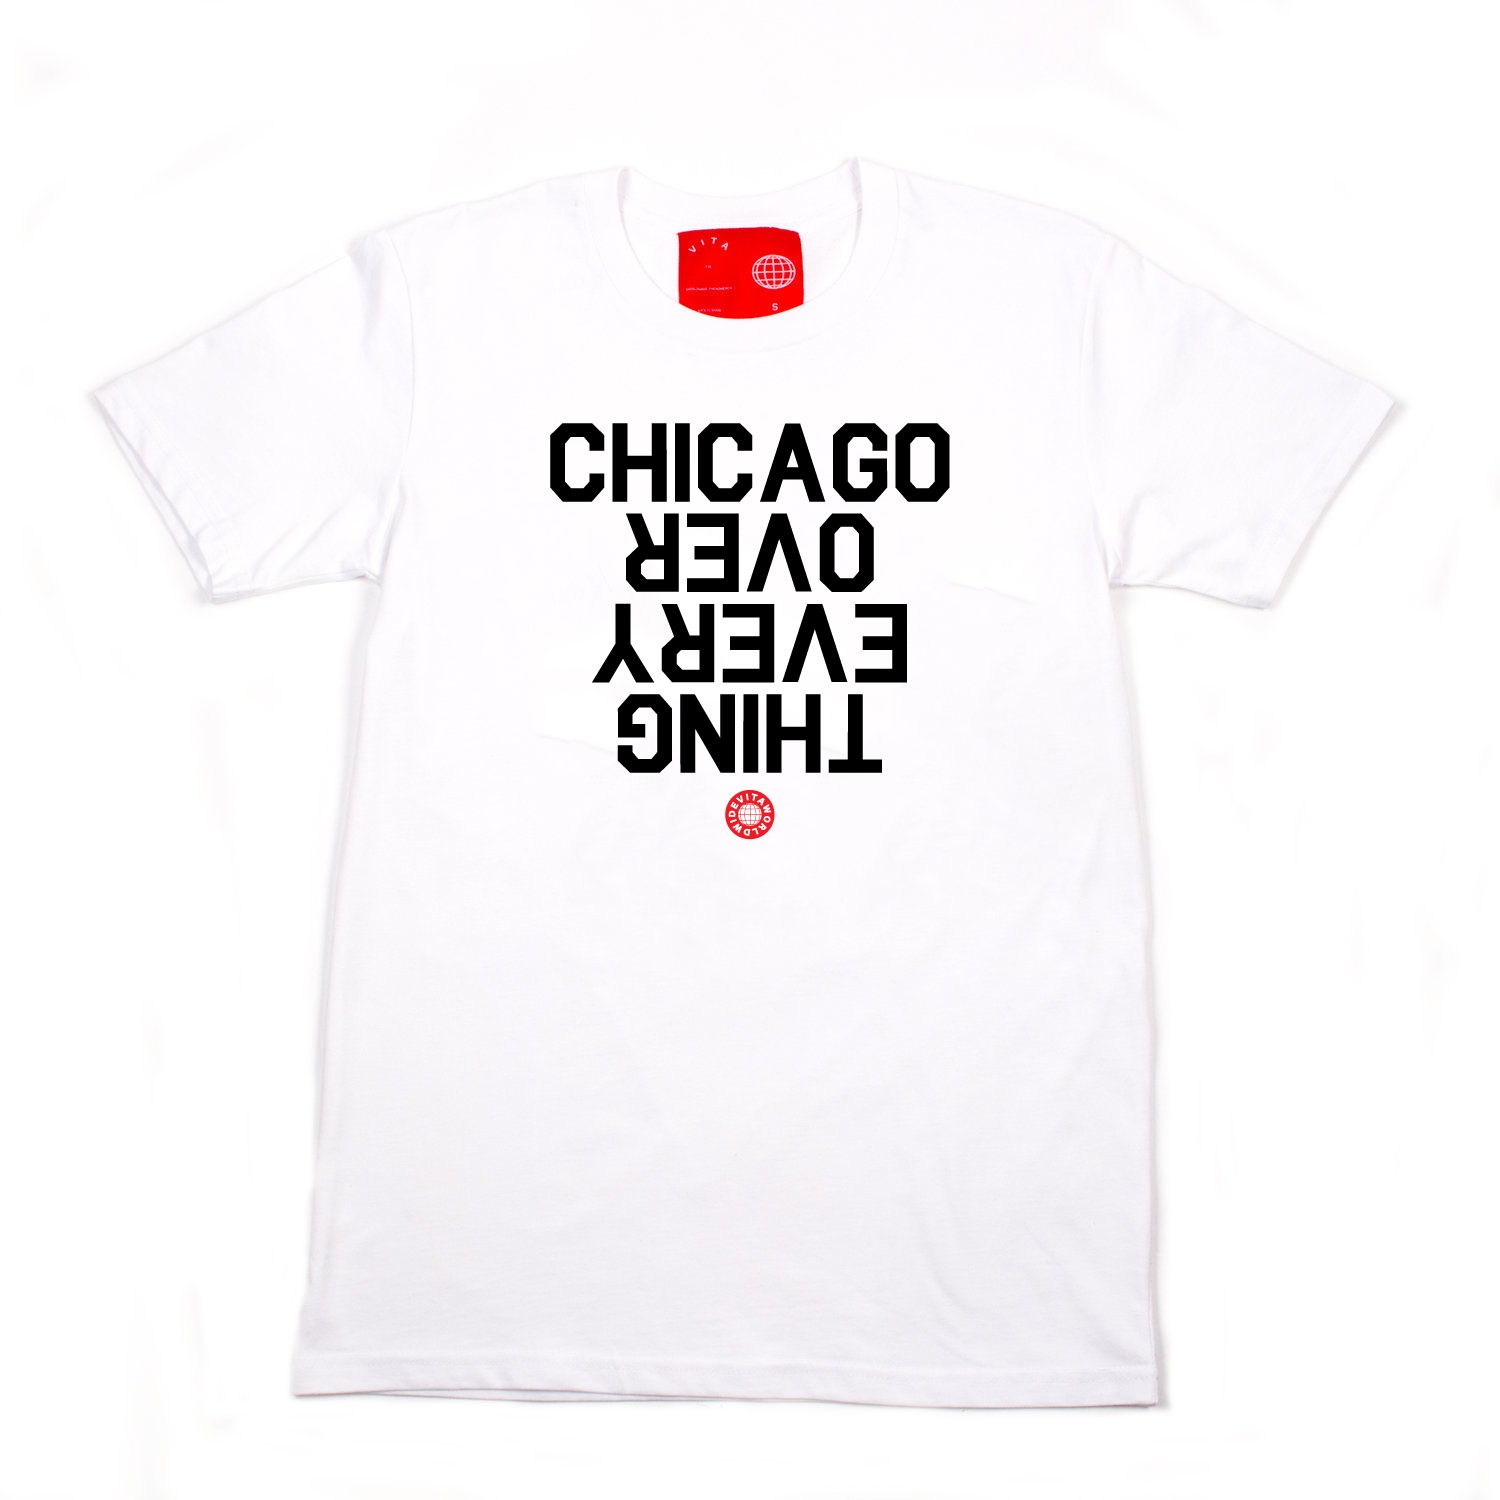 7. Chicago Over Everything Tee - Brand: VitaPrice: $40.00